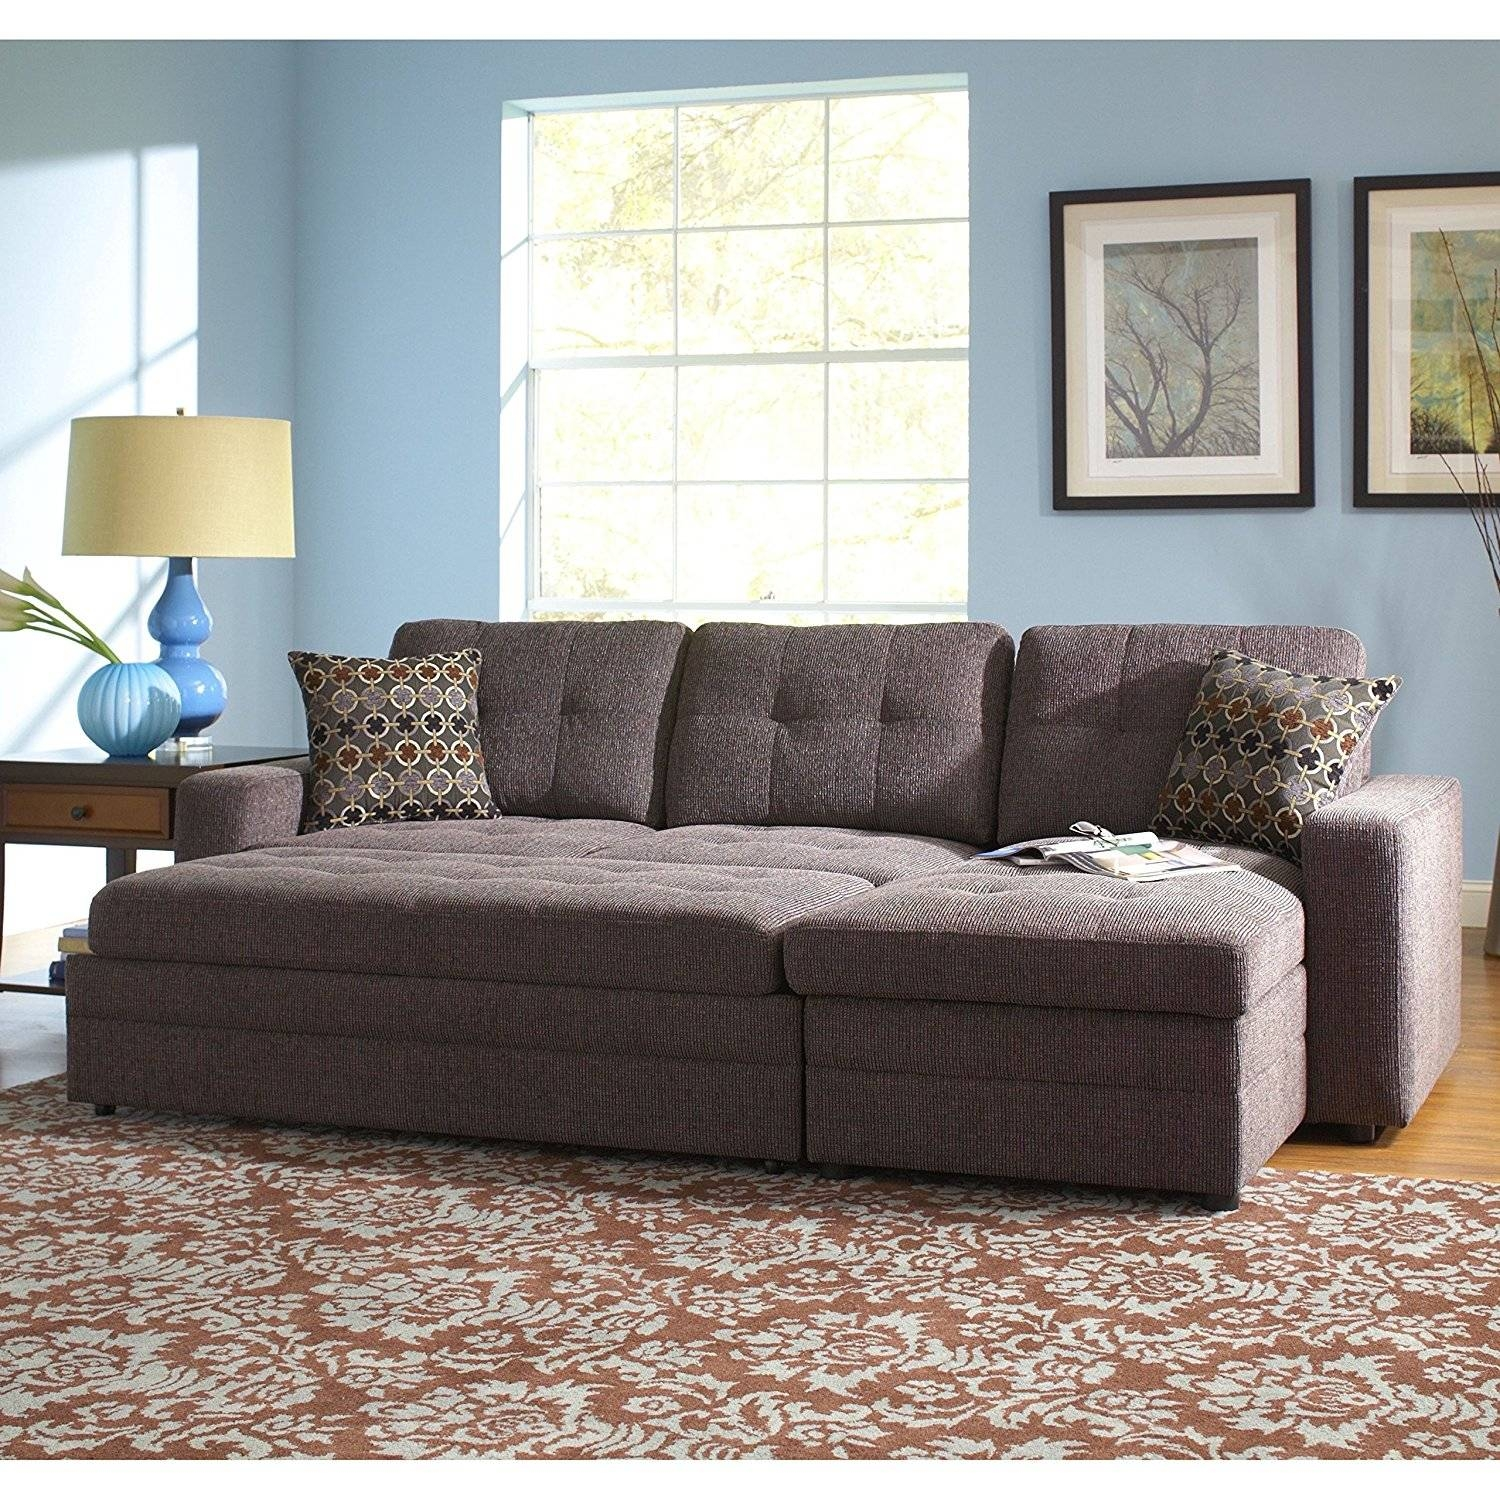 Furniture: Cozy Grey Sectional Sofa For Modern Family Room with regard to Mini Sectional Sofas (Image 10 of 30)